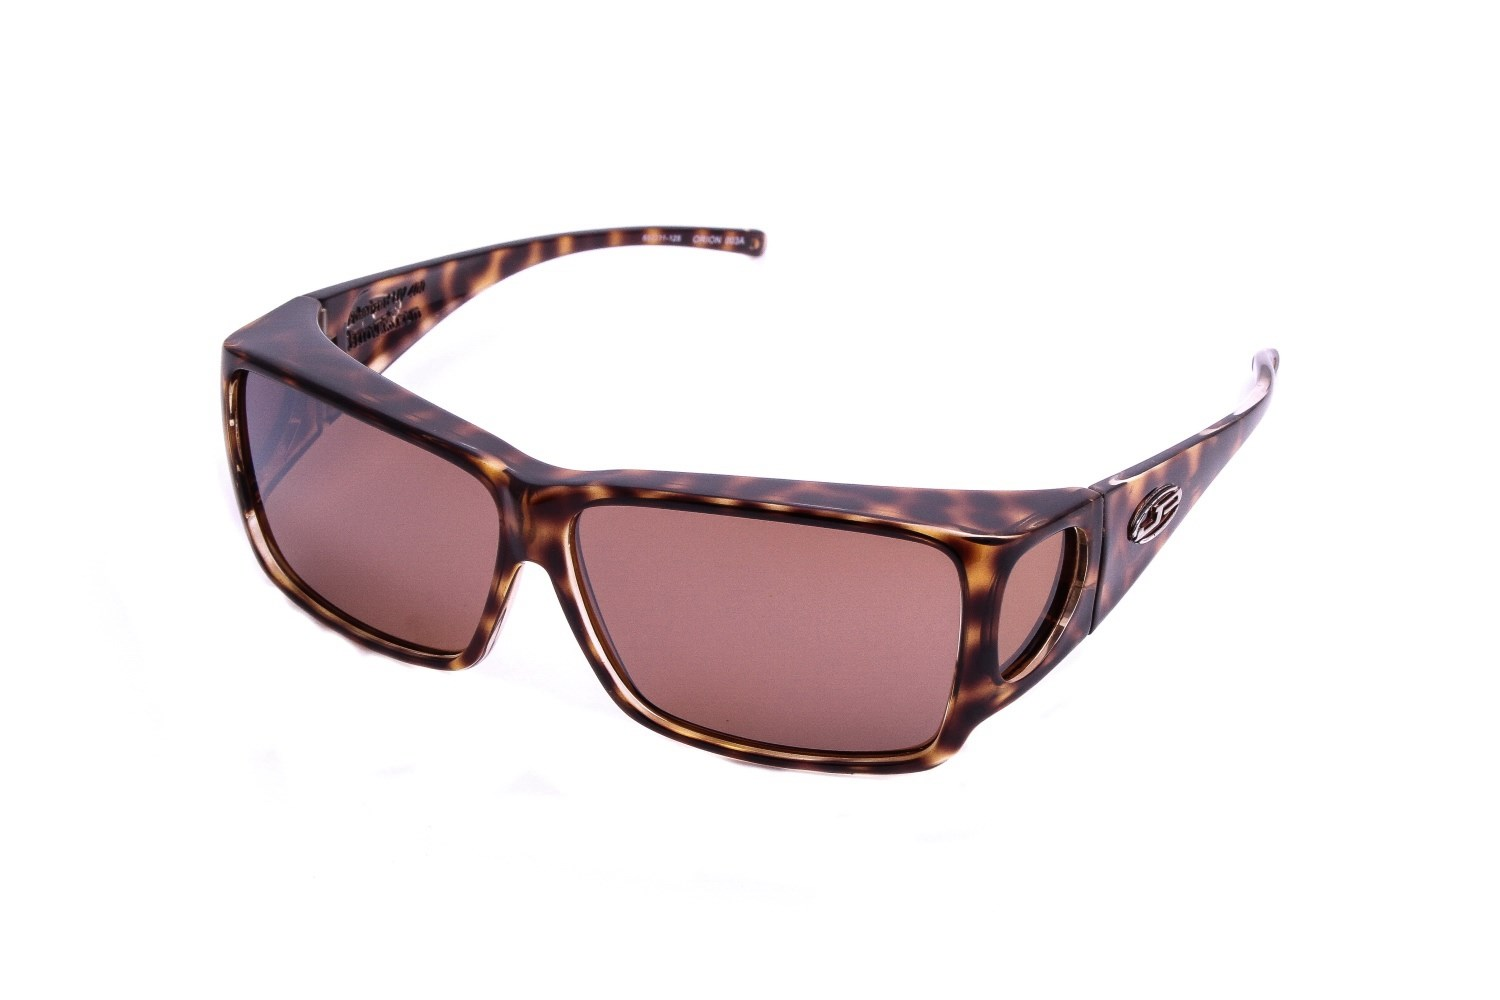 Fitovers Eyewear Orion Over Prescription Sunglasses